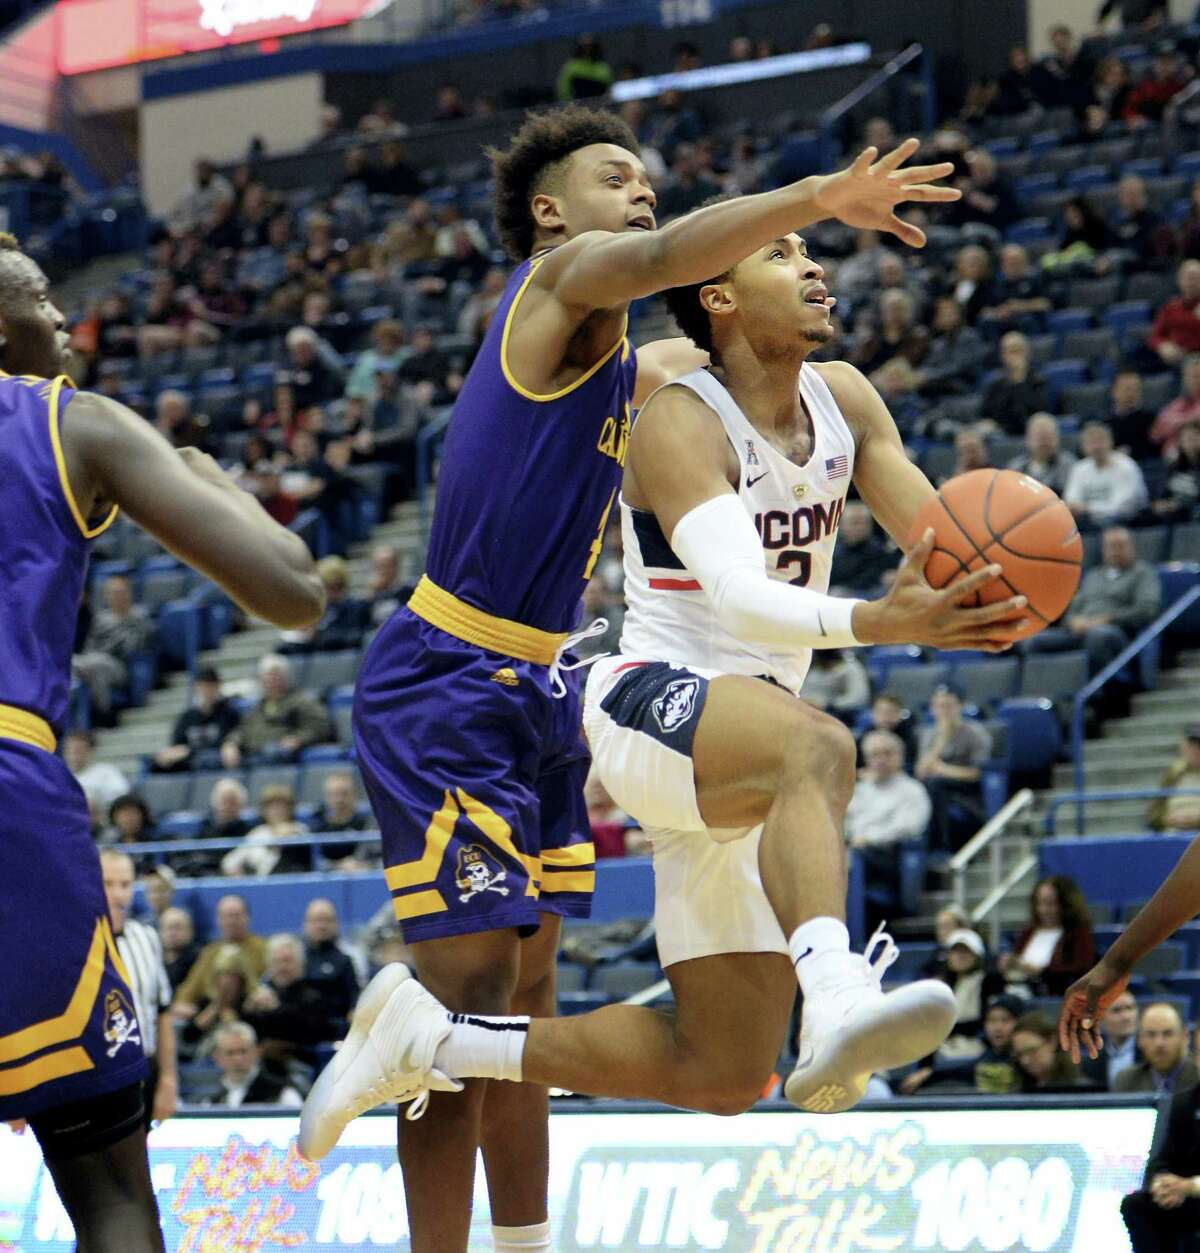 UConn's Jalen Adams (2) is defended by East Carolina's Elijah Hughes during Sunday's game.